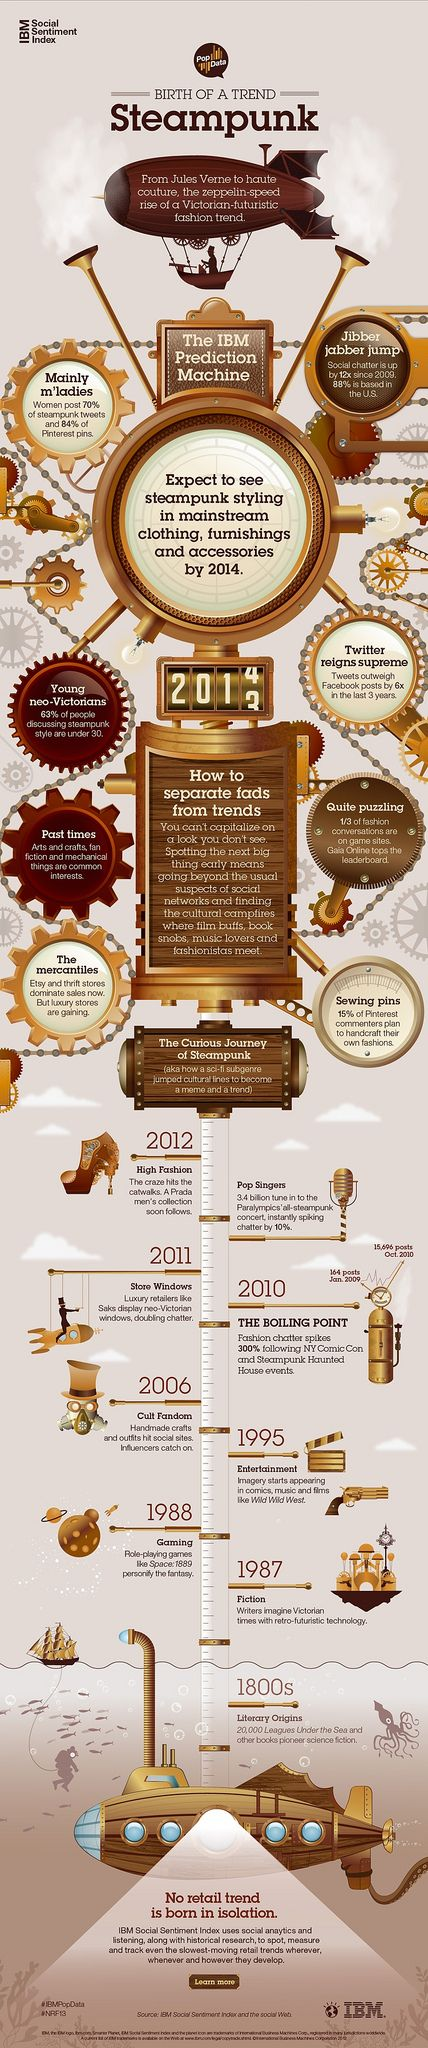 The Birth of the Steampunk Trend-by IBM Info. Not something I'm really into, but some of the crafting is inspirational in a Jules Verne/Conan Doyle Victorian/Edwardian kind of way.